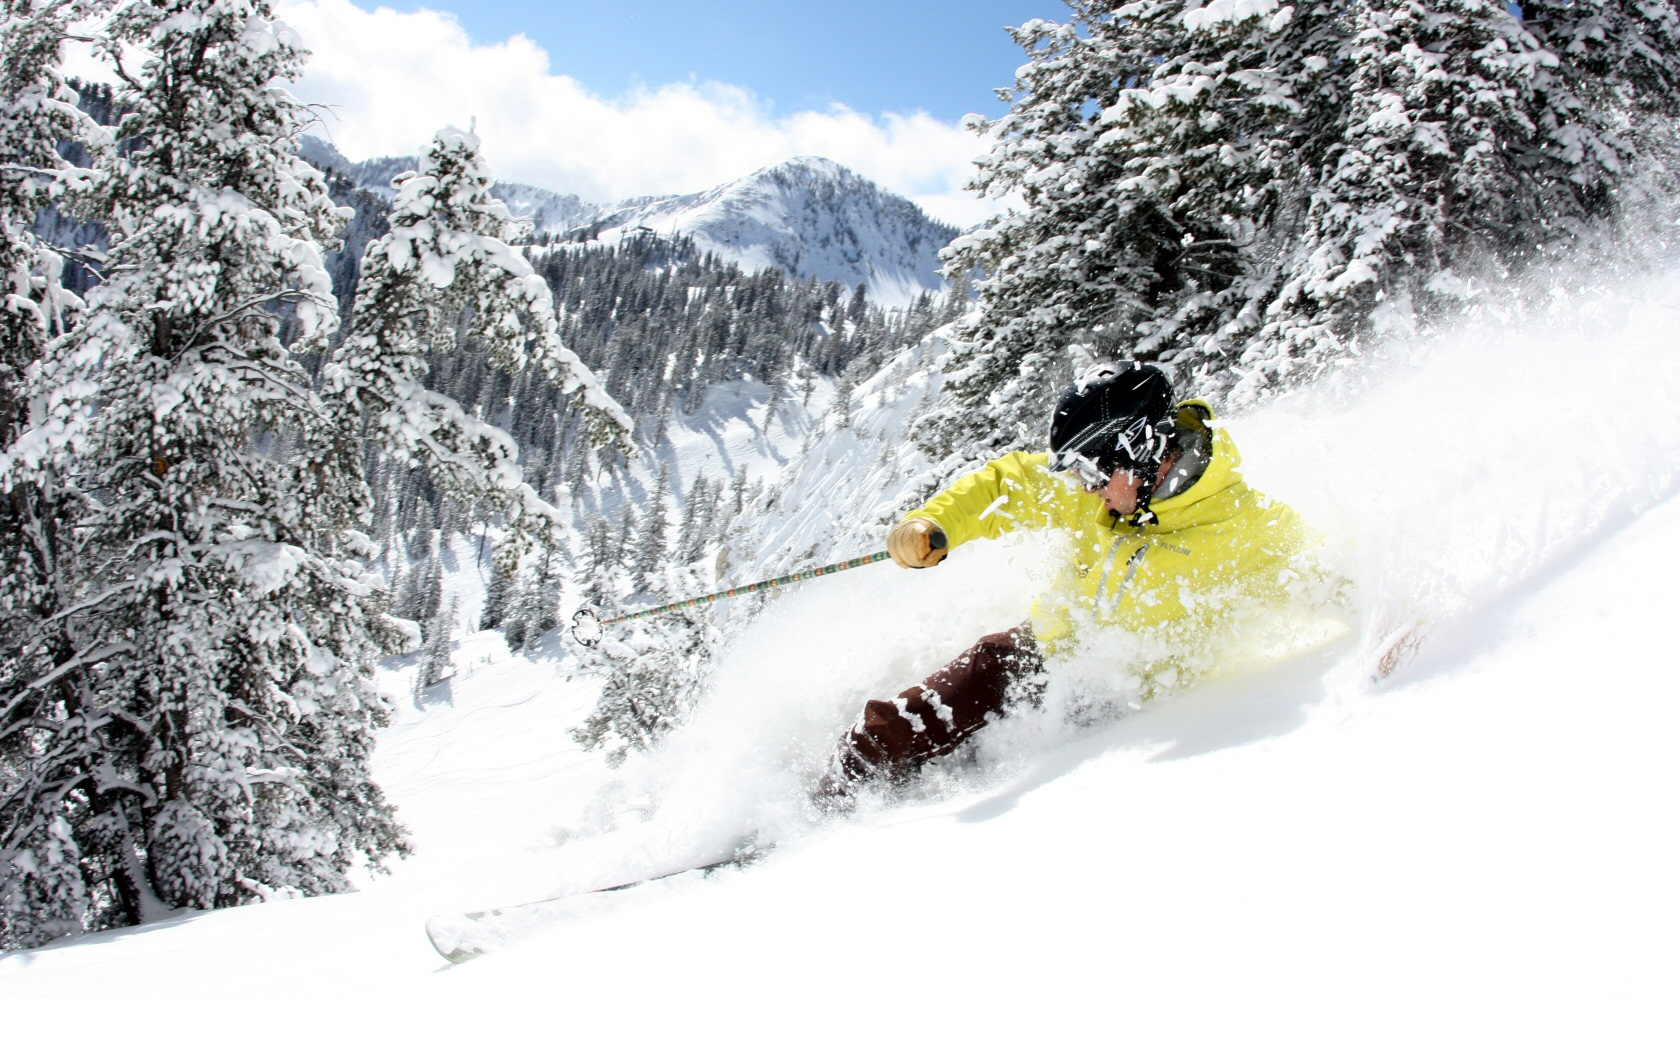 Skiing wallpaper and background image 1680x1050 id - Ski wallpaper ...